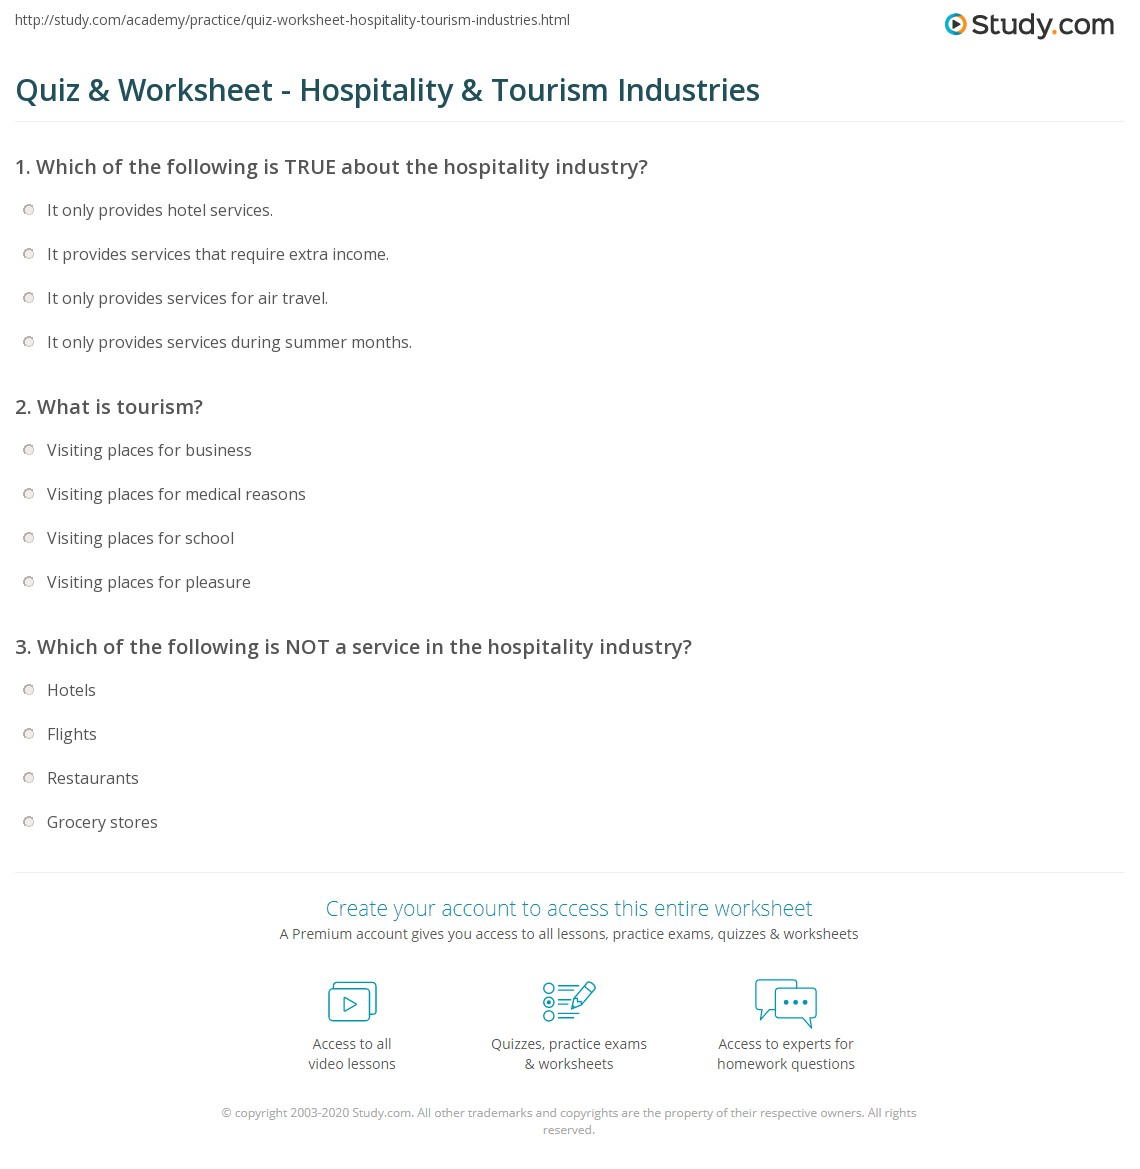 Quiz Worksheet Hospitality Tourism Industries Study Com